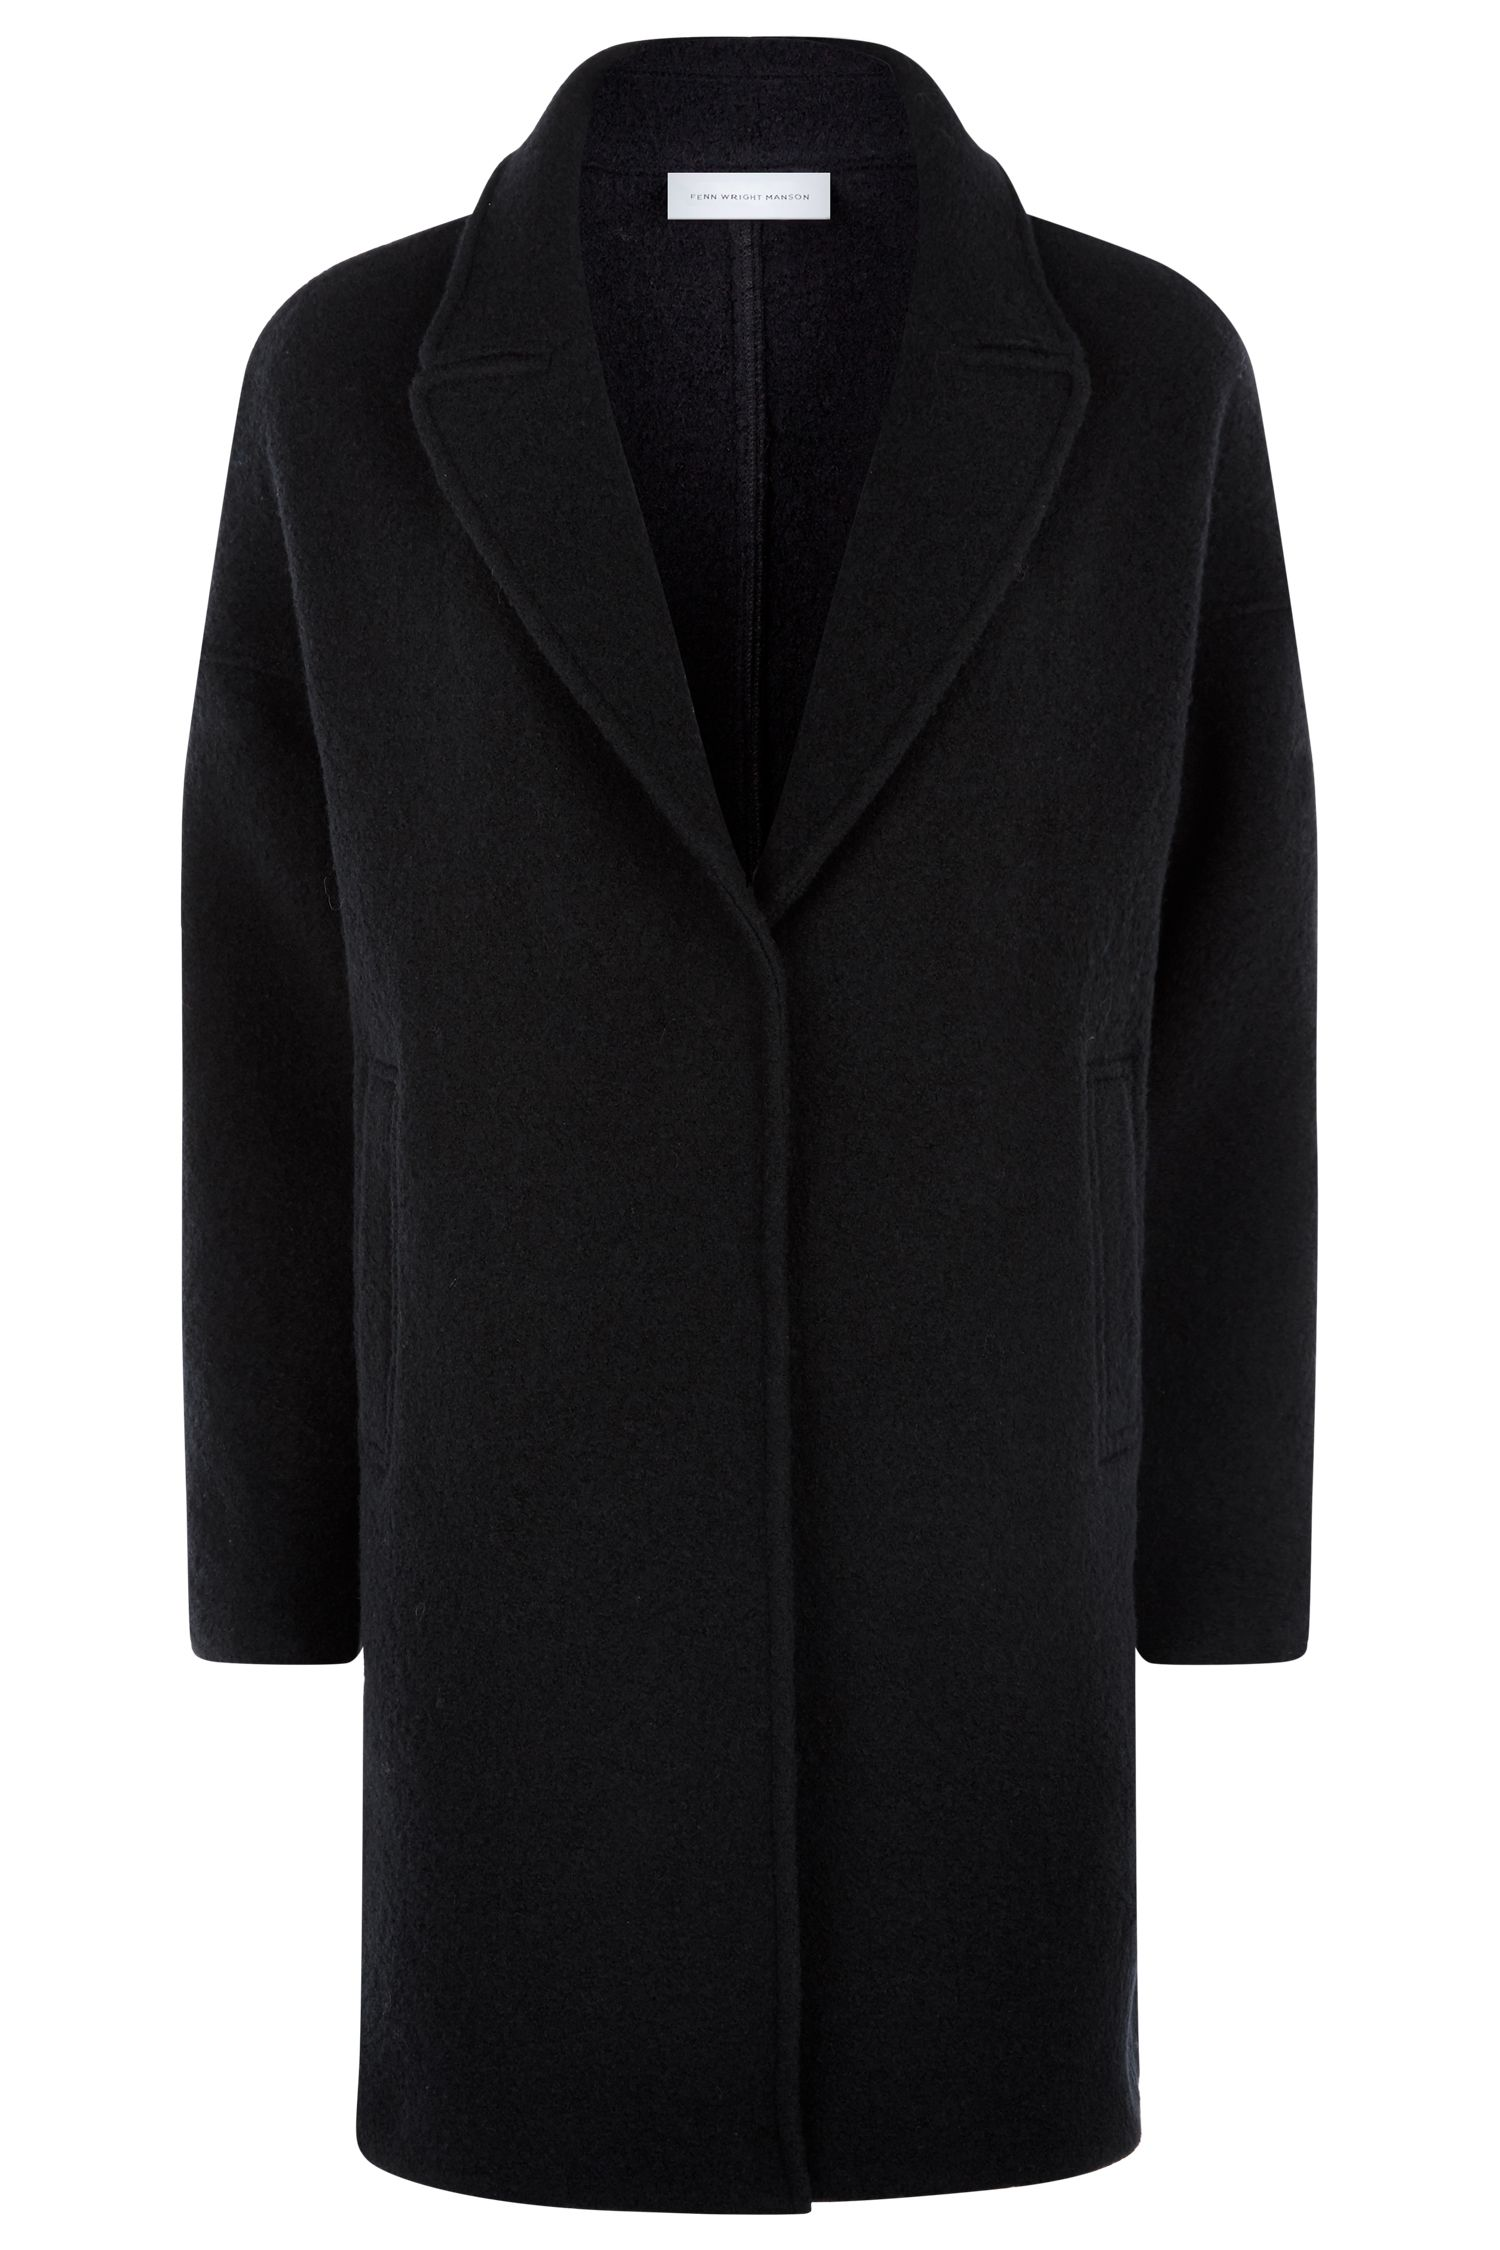 Fenn Wright Manson Helios Coat, Black